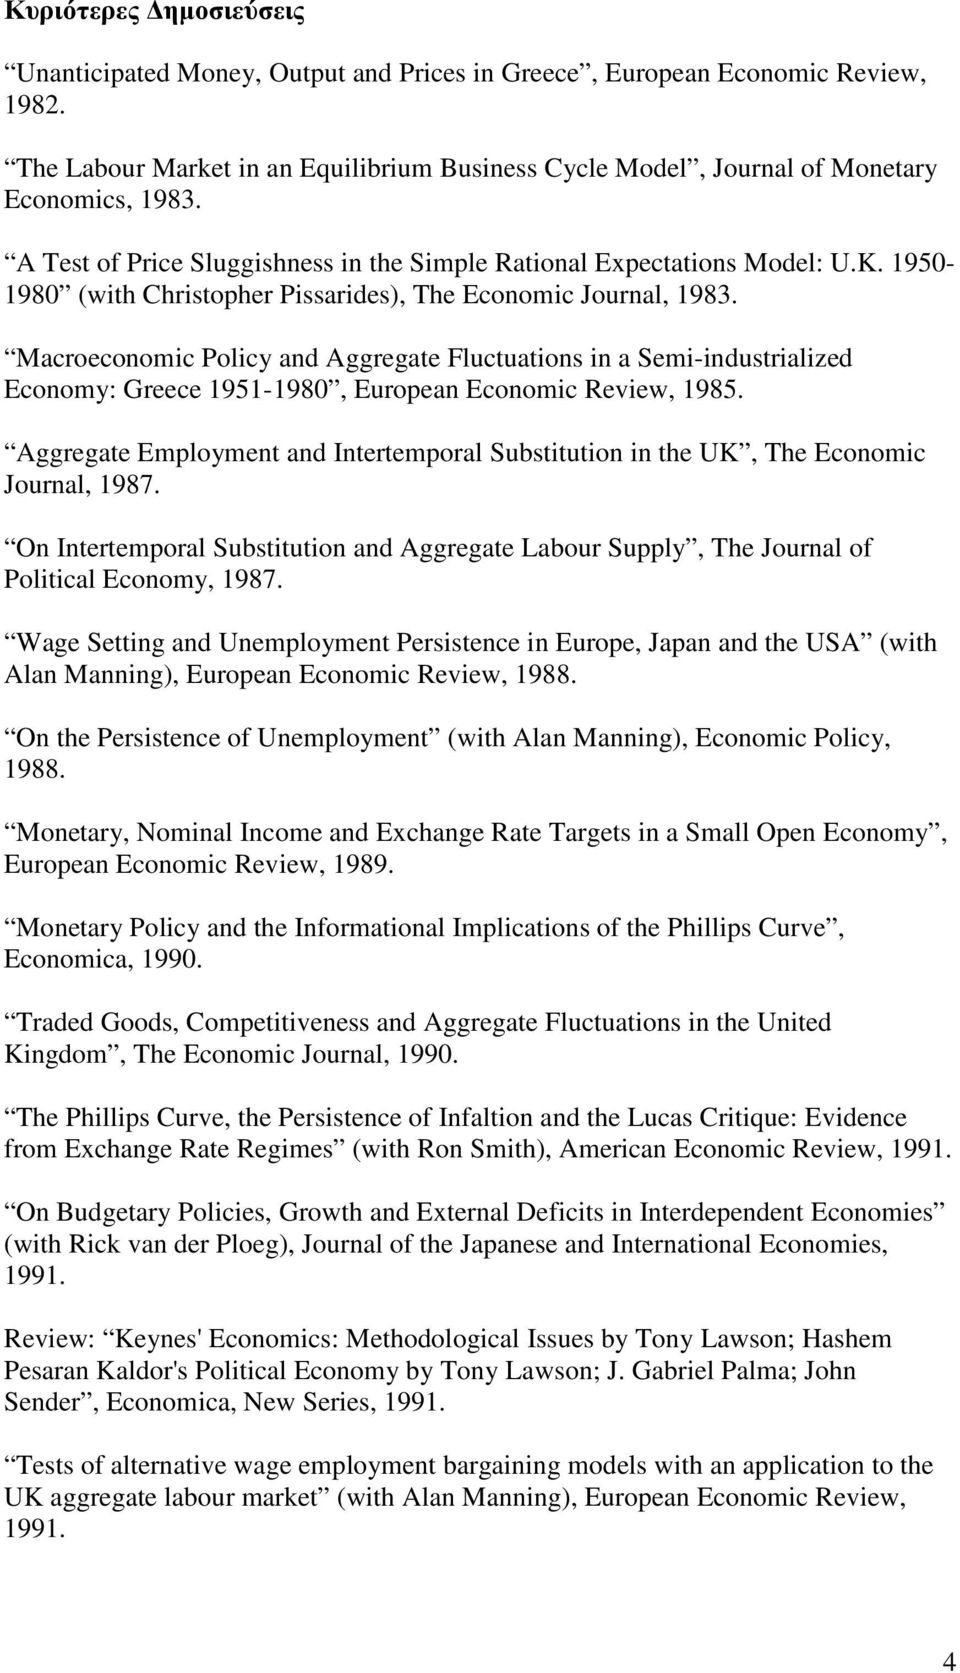 Macroeconomic Policy and Aggregate Fluctuations in a Semi-industrialized Economy: Greece 1951-1980, European Economic Review, 1985.